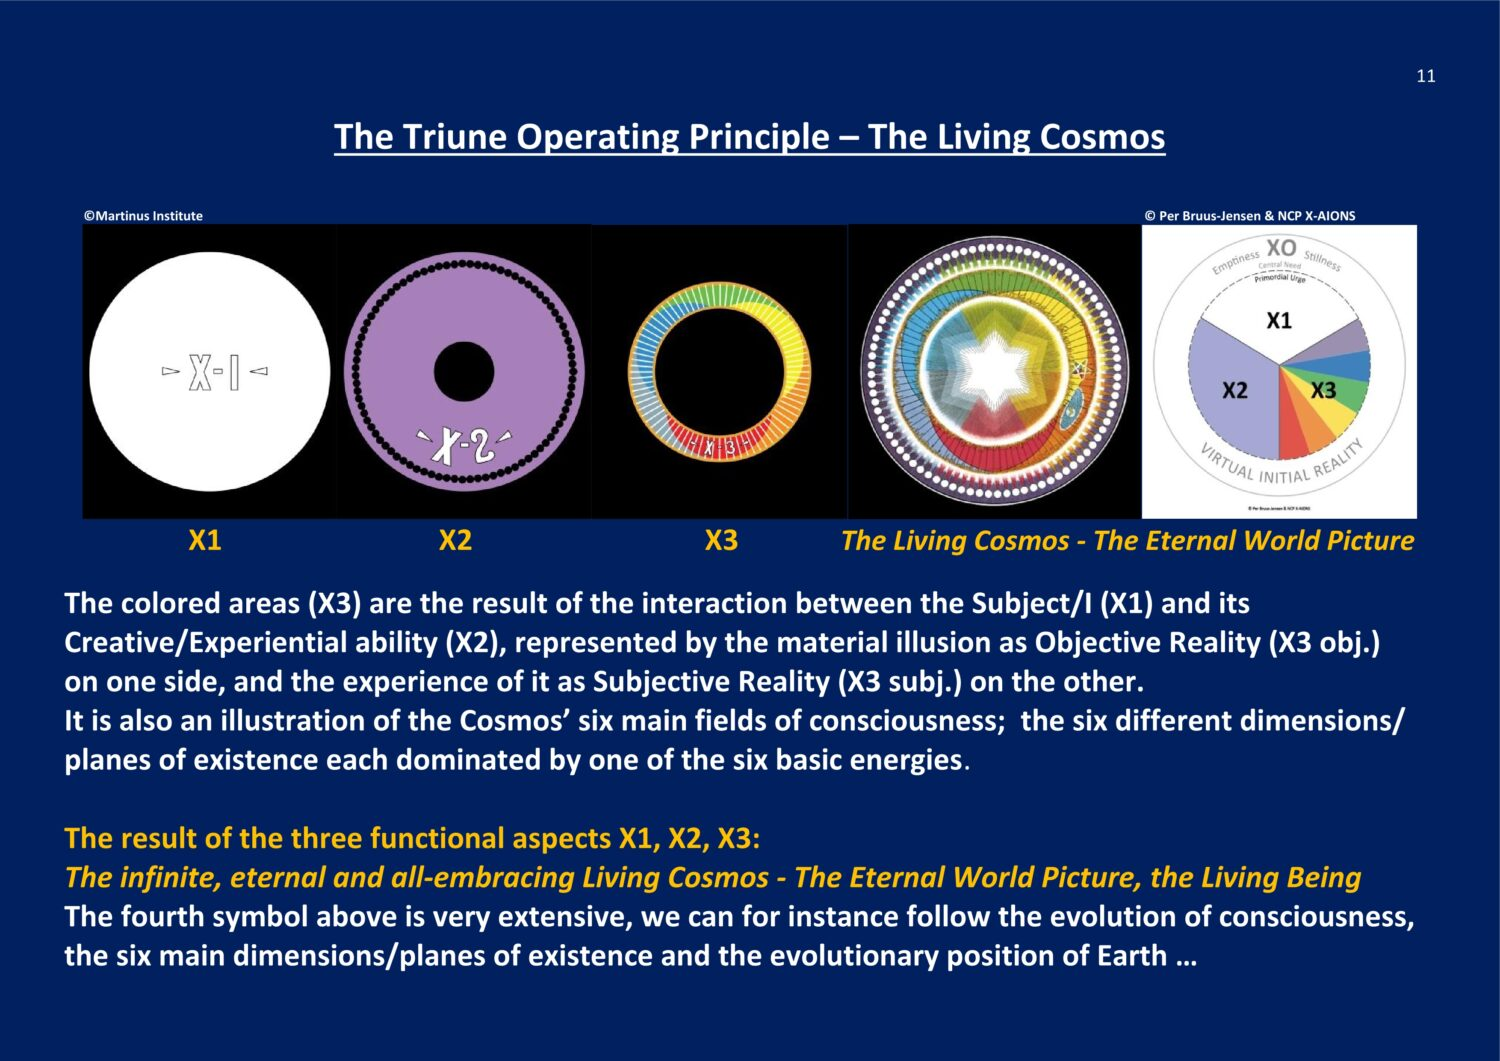 Triune Operating Principle - The Living Cosmos, NCP X-AIONS